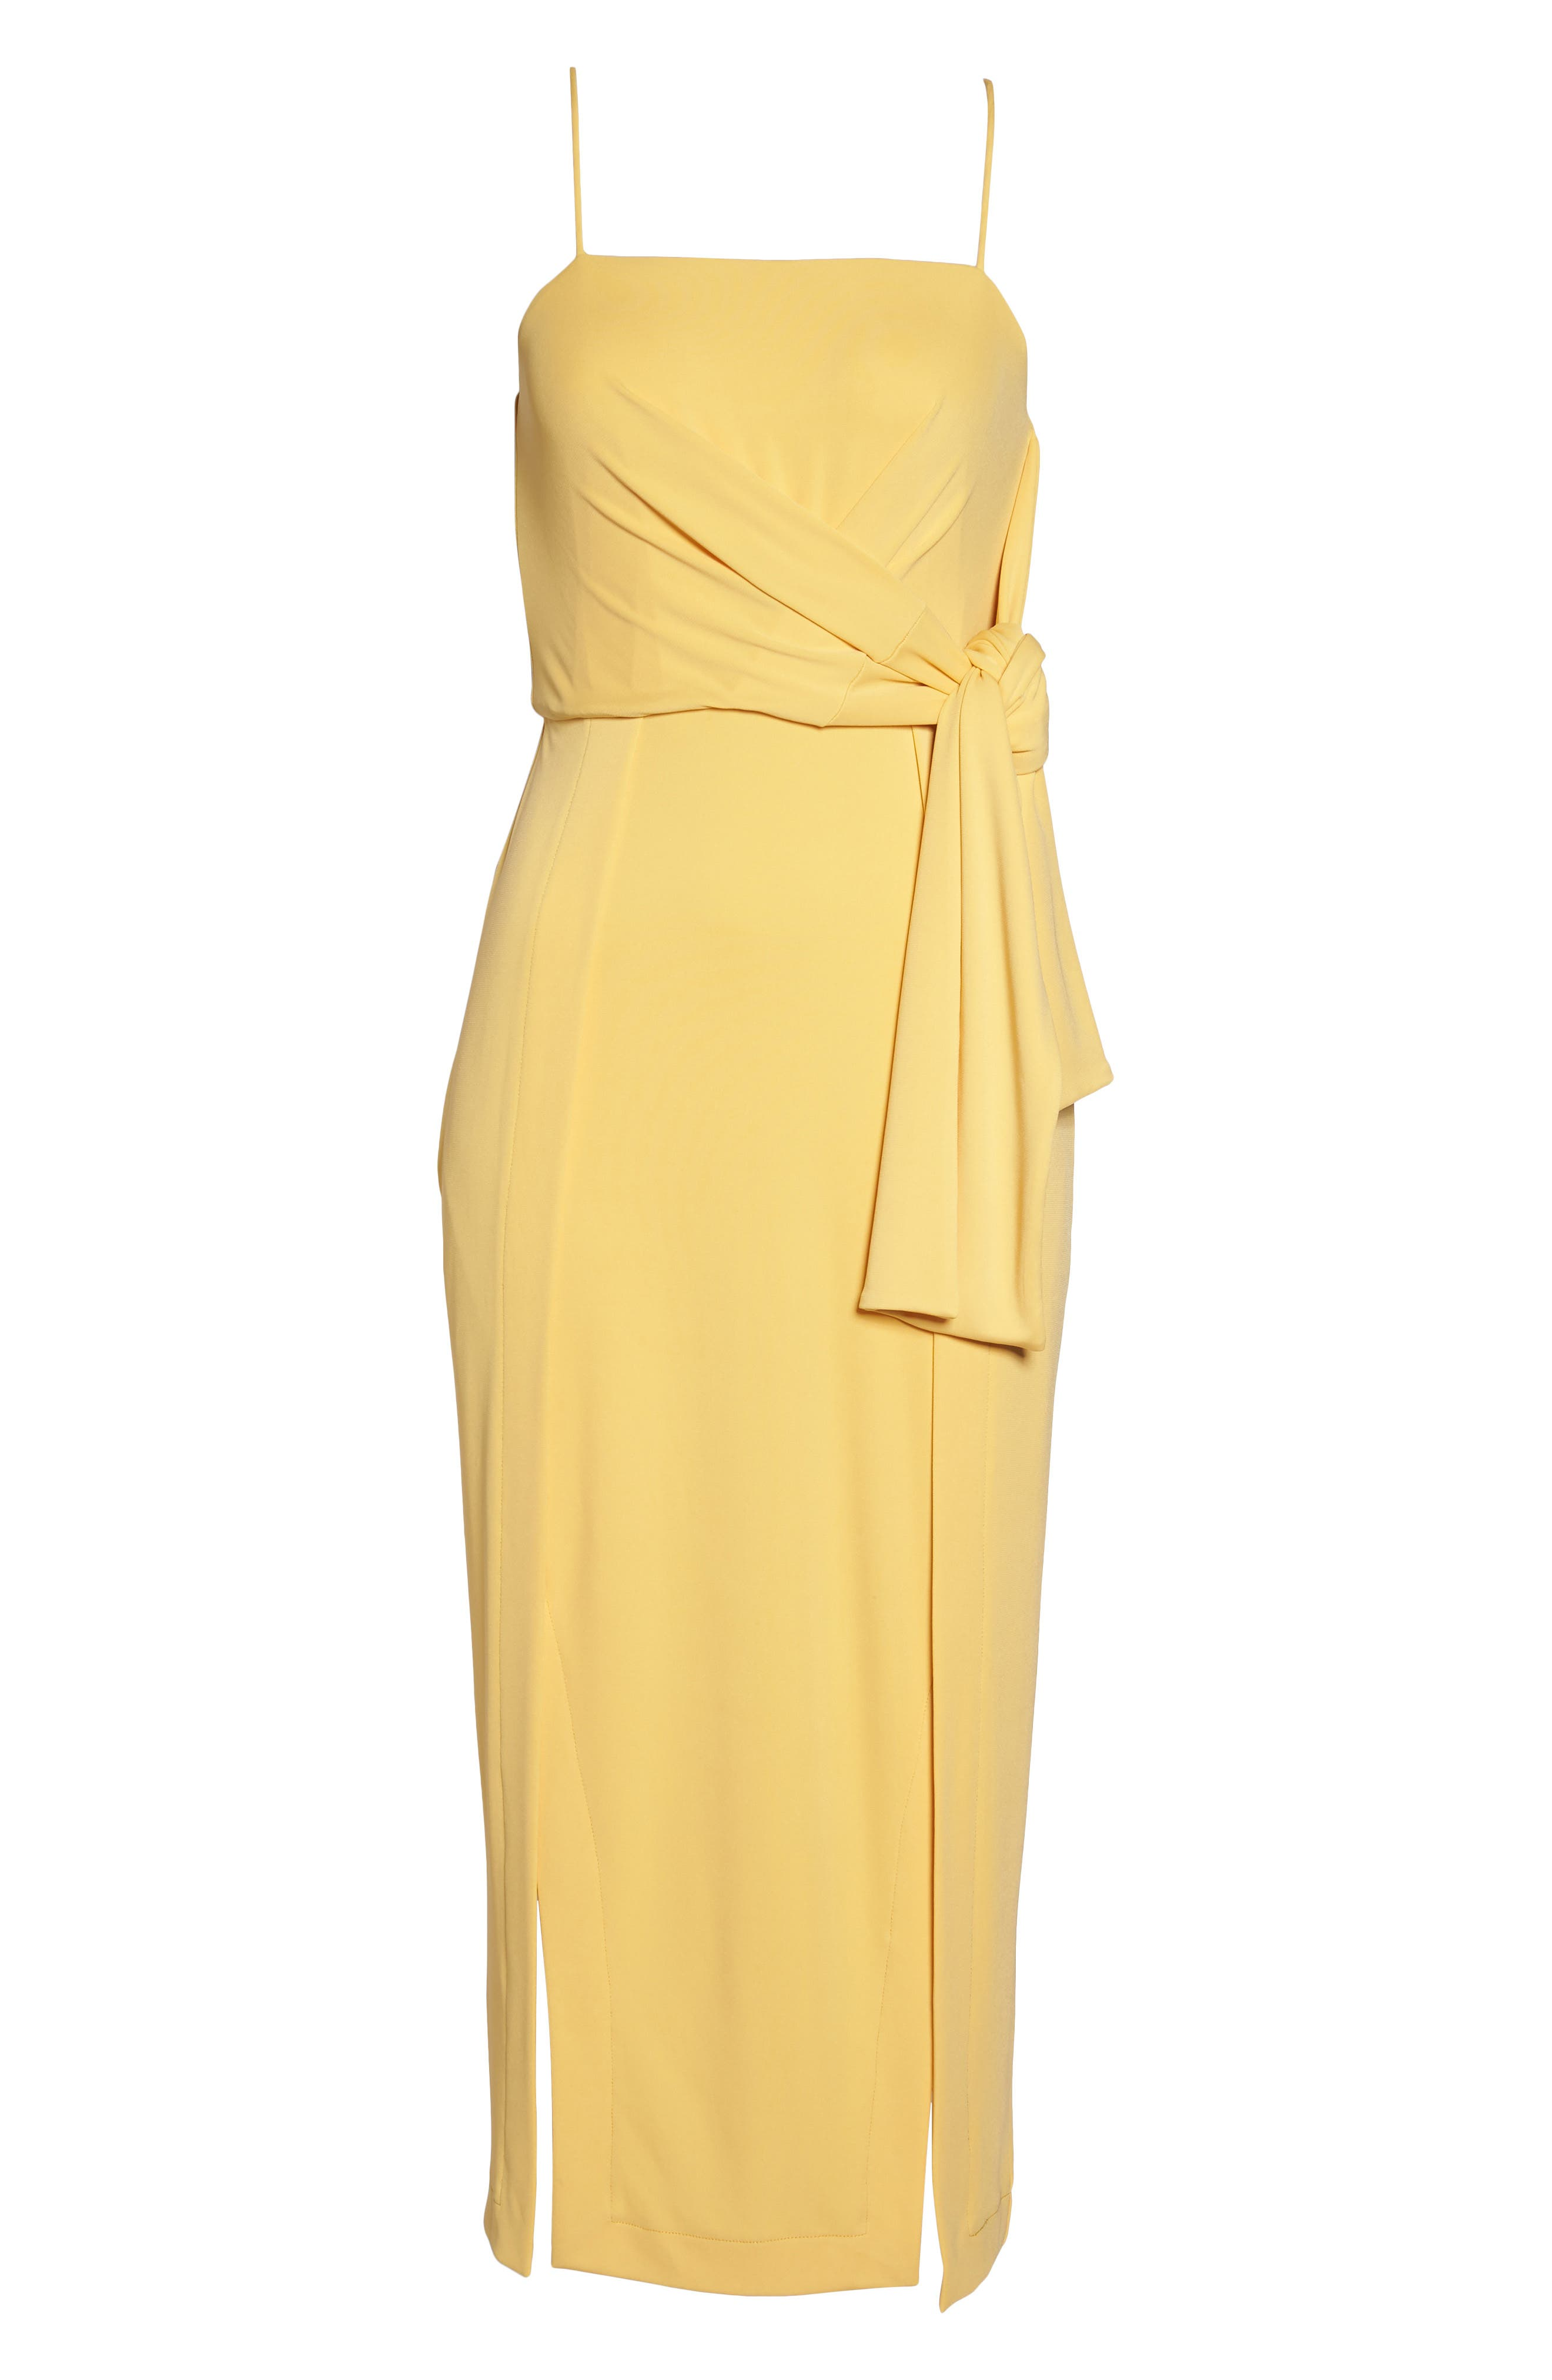 Recollect Slinky Side Tie Midi Dress,                             Alternate thumbnail 6, color,                             740